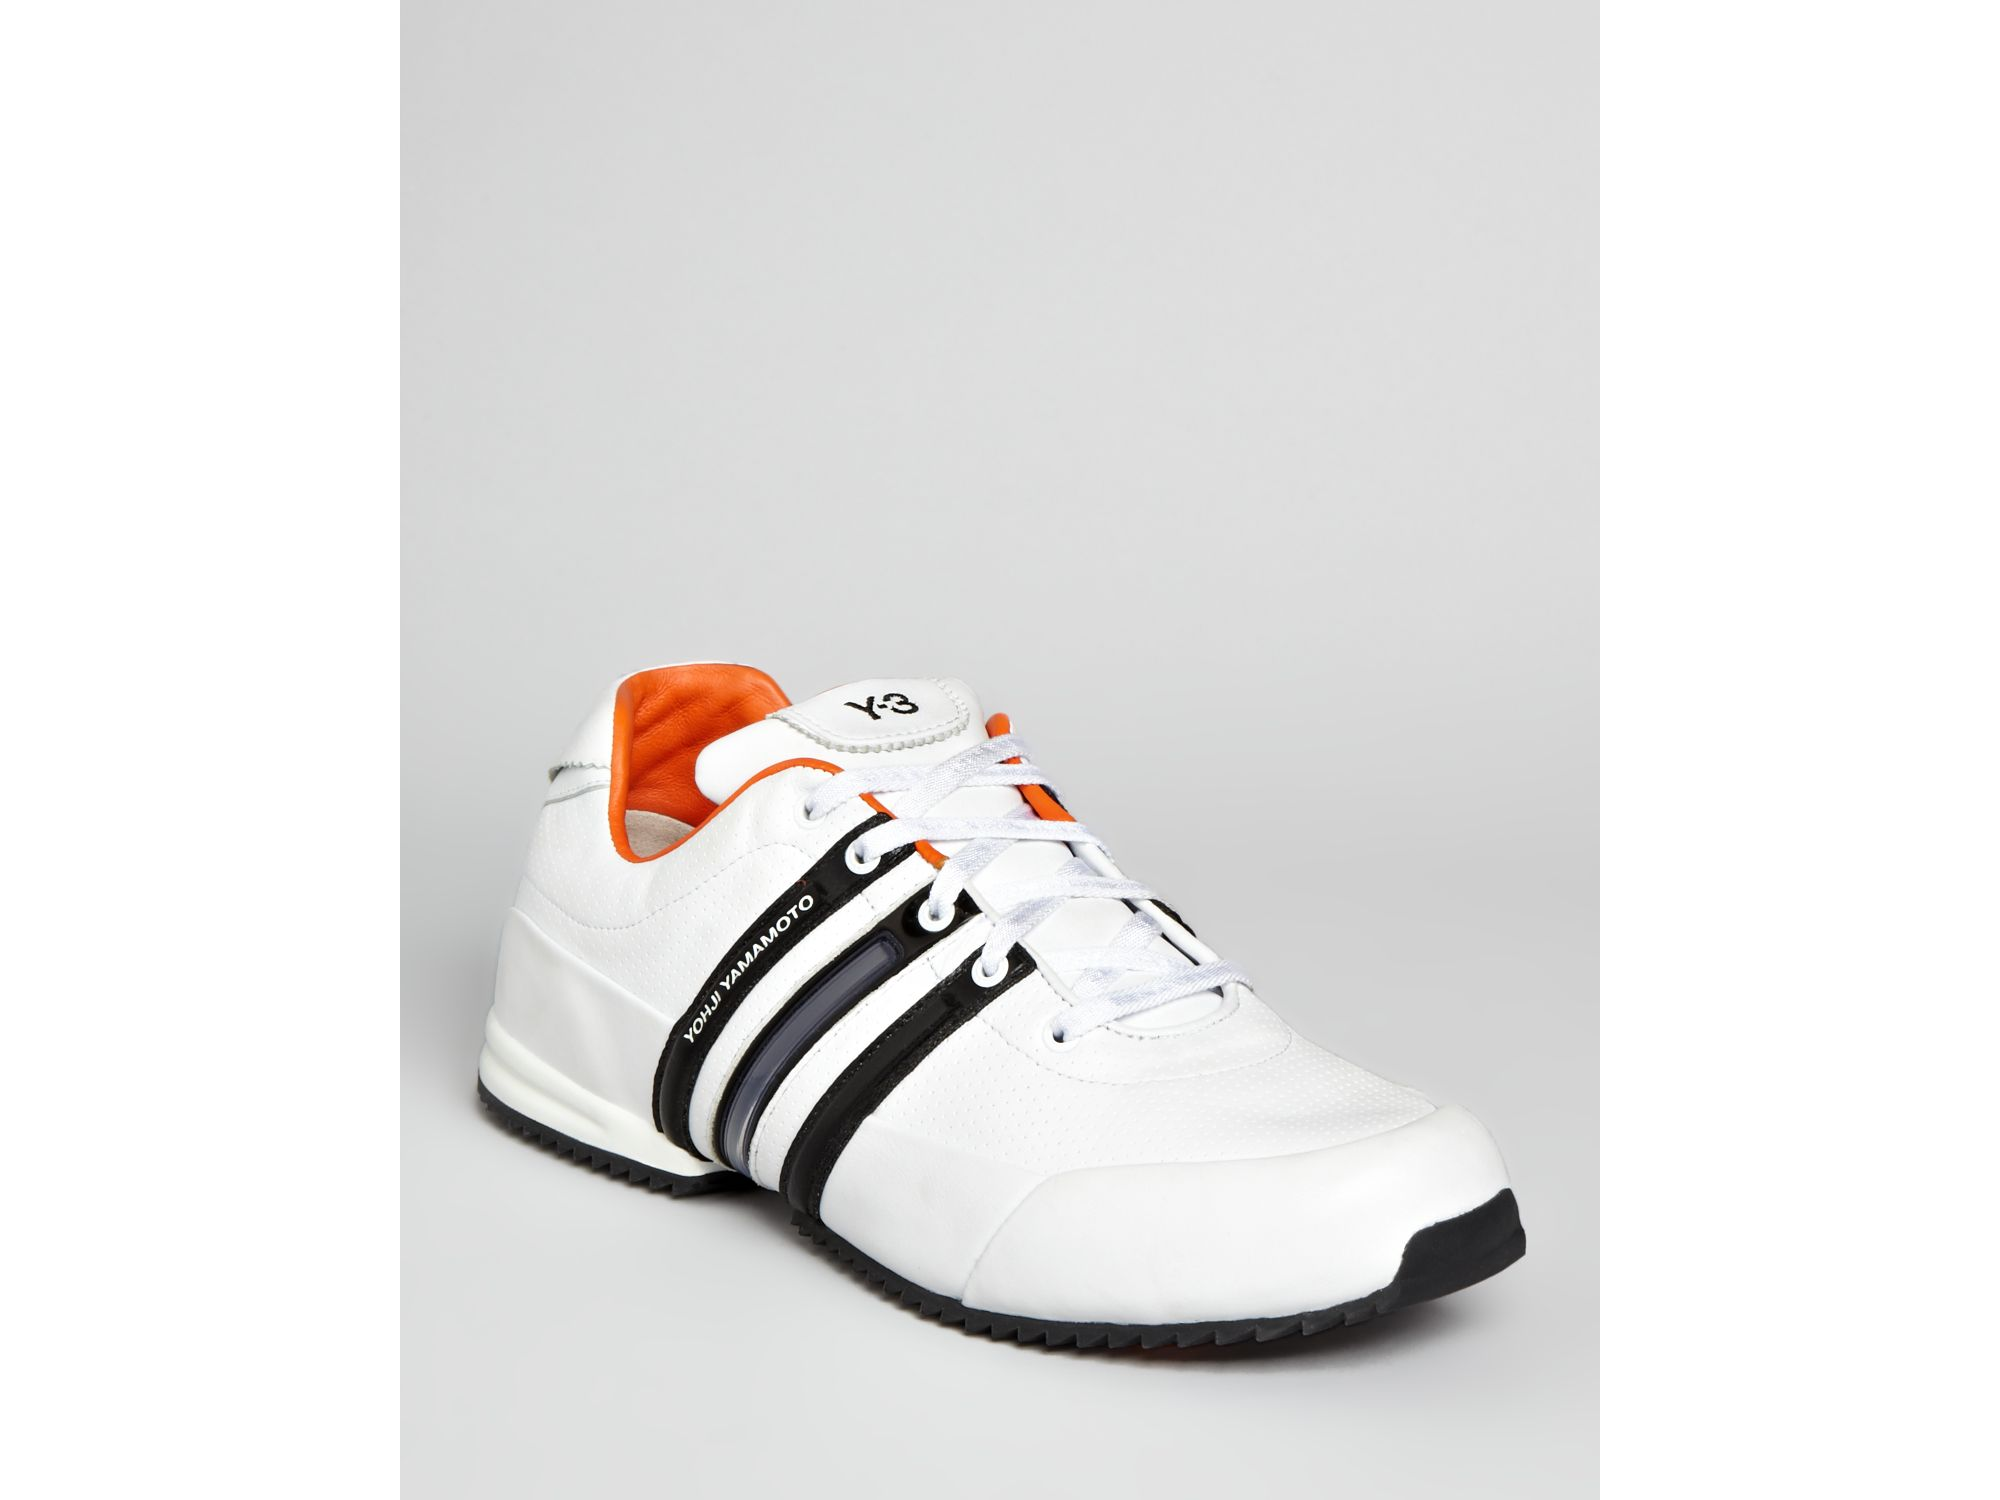 86611ef79e9b0 Lyst - Y-3 Sprint Classic Sneakers in White for Men